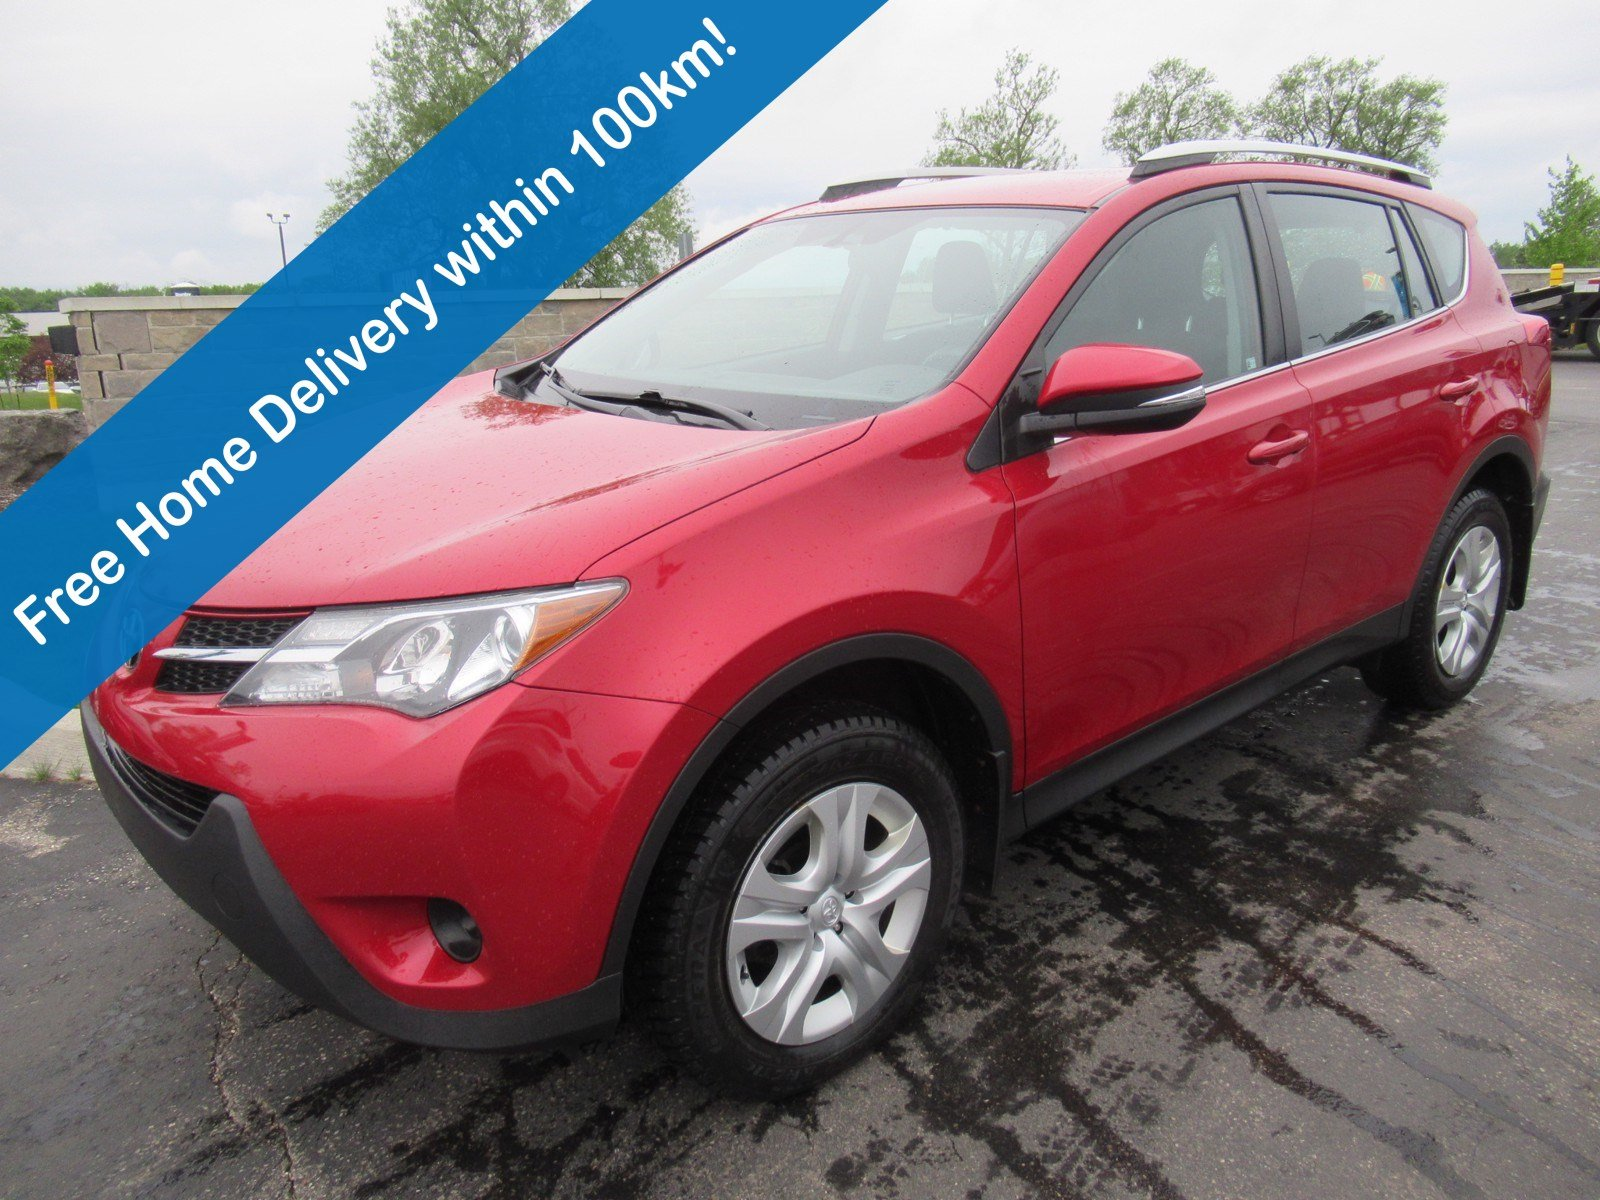 Certified Pre-Owned 2015 Toyota RAV4 LE, Bluetooth, Keyless Entry, Cruise Control, Power Package and more!